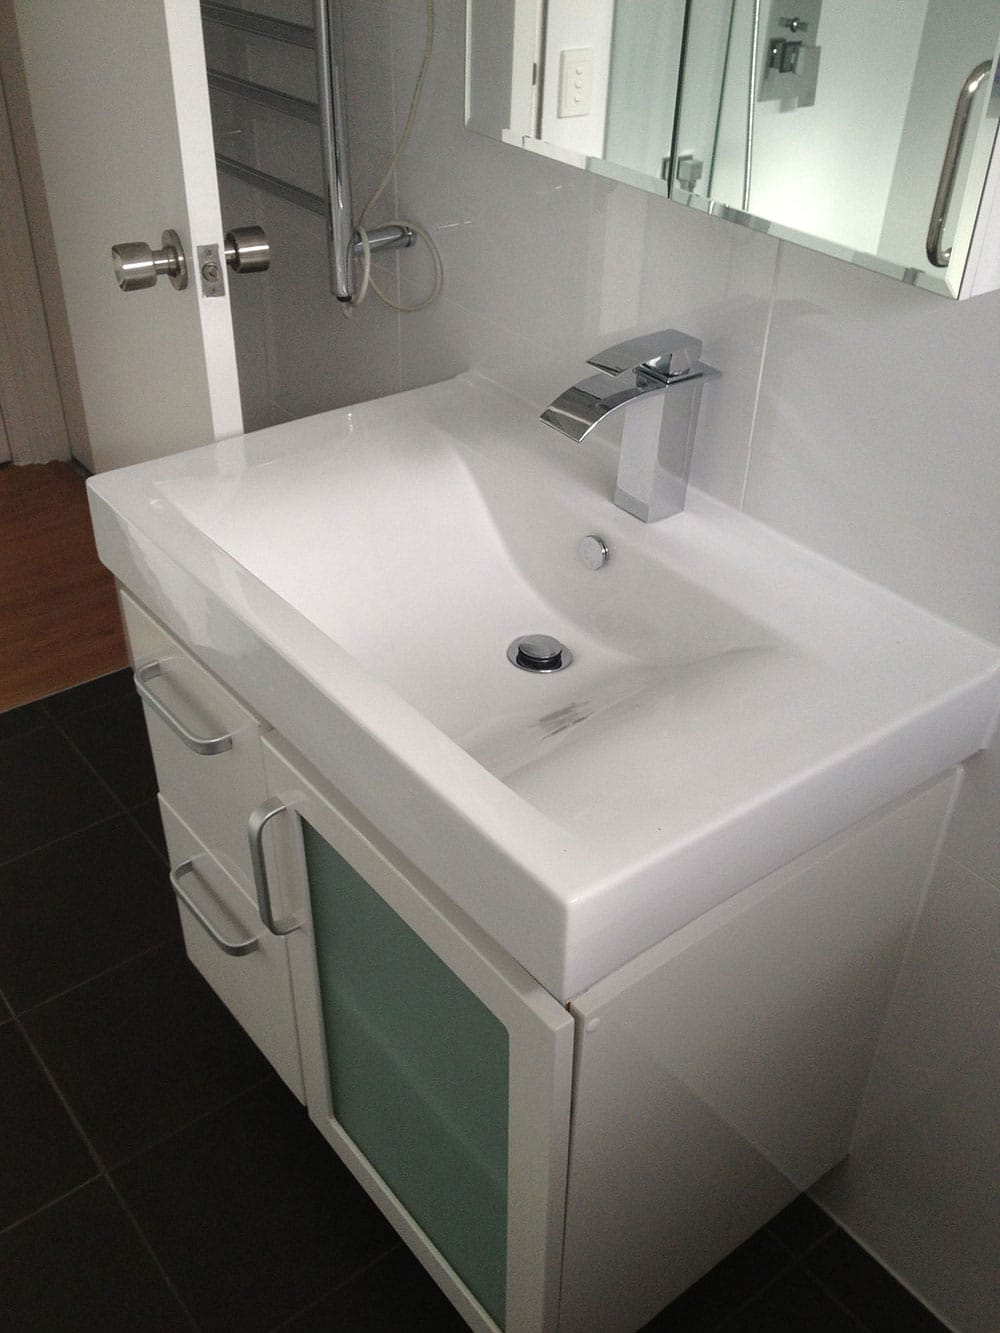 700mm Vanity & Mixer From Builders Optimised Selected Range